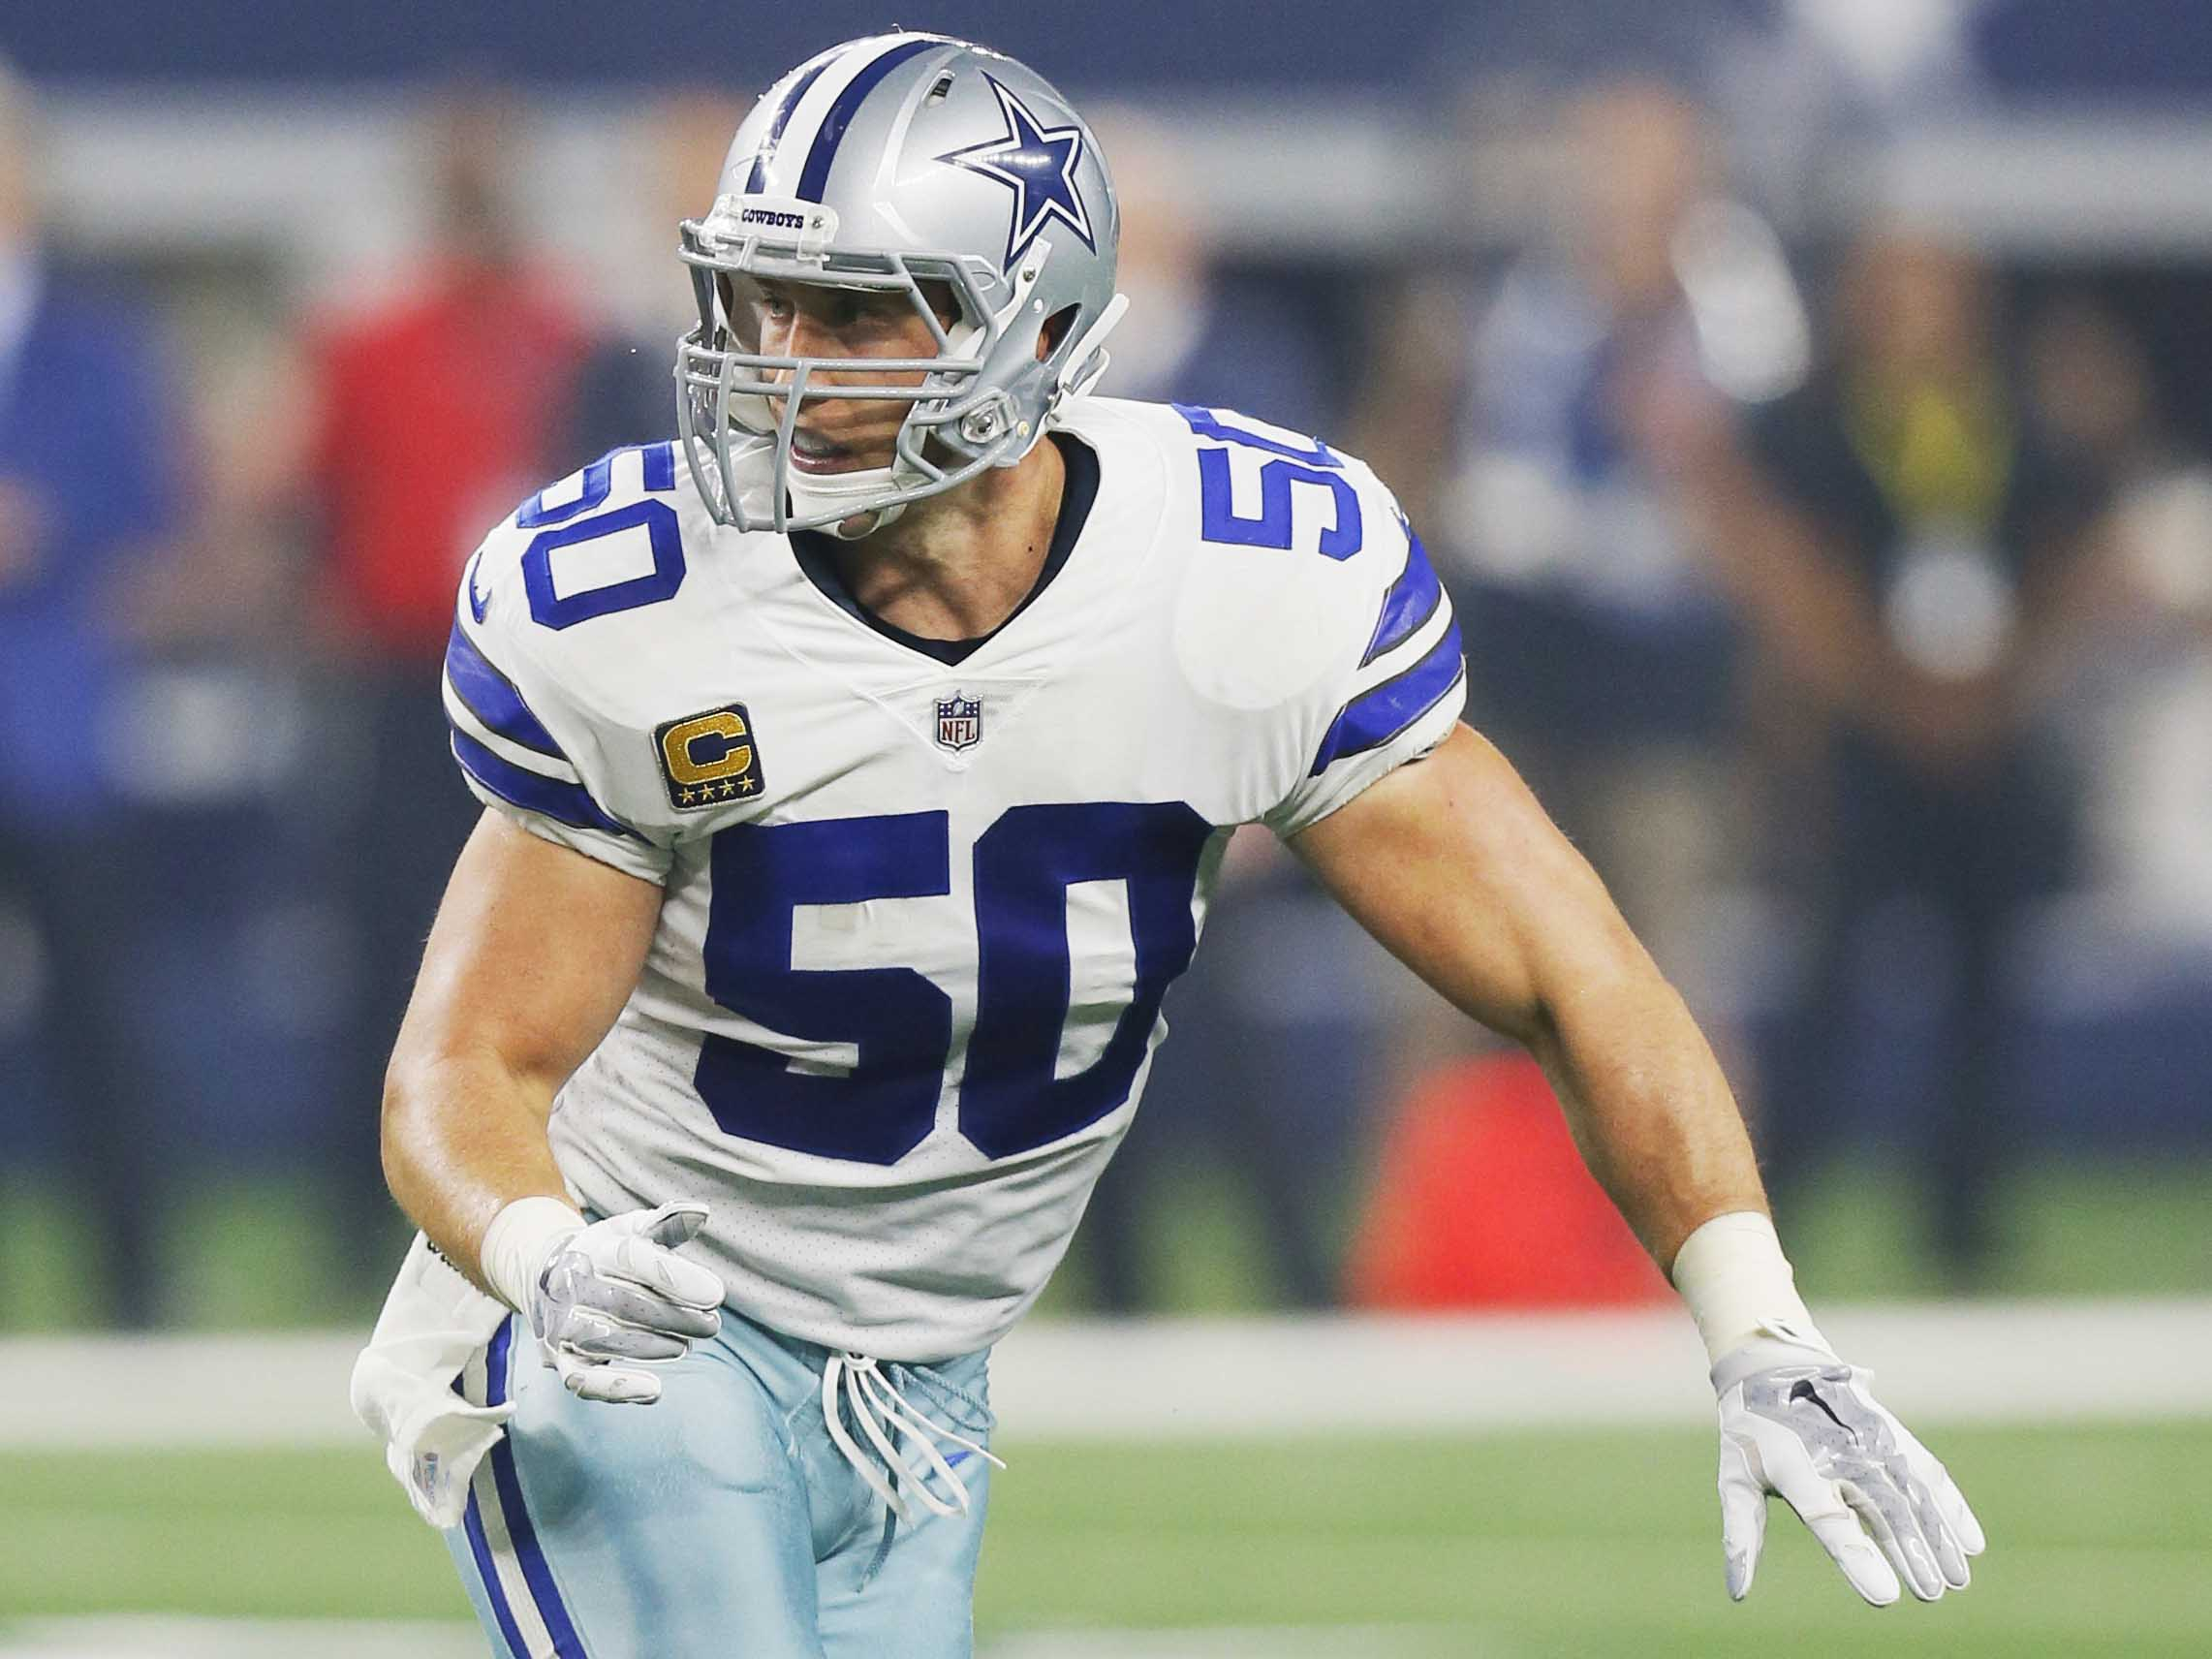 online store b437b 6aa16 Sean Lee: 'I'm leaning towards playing' in 2019 - NFL.com